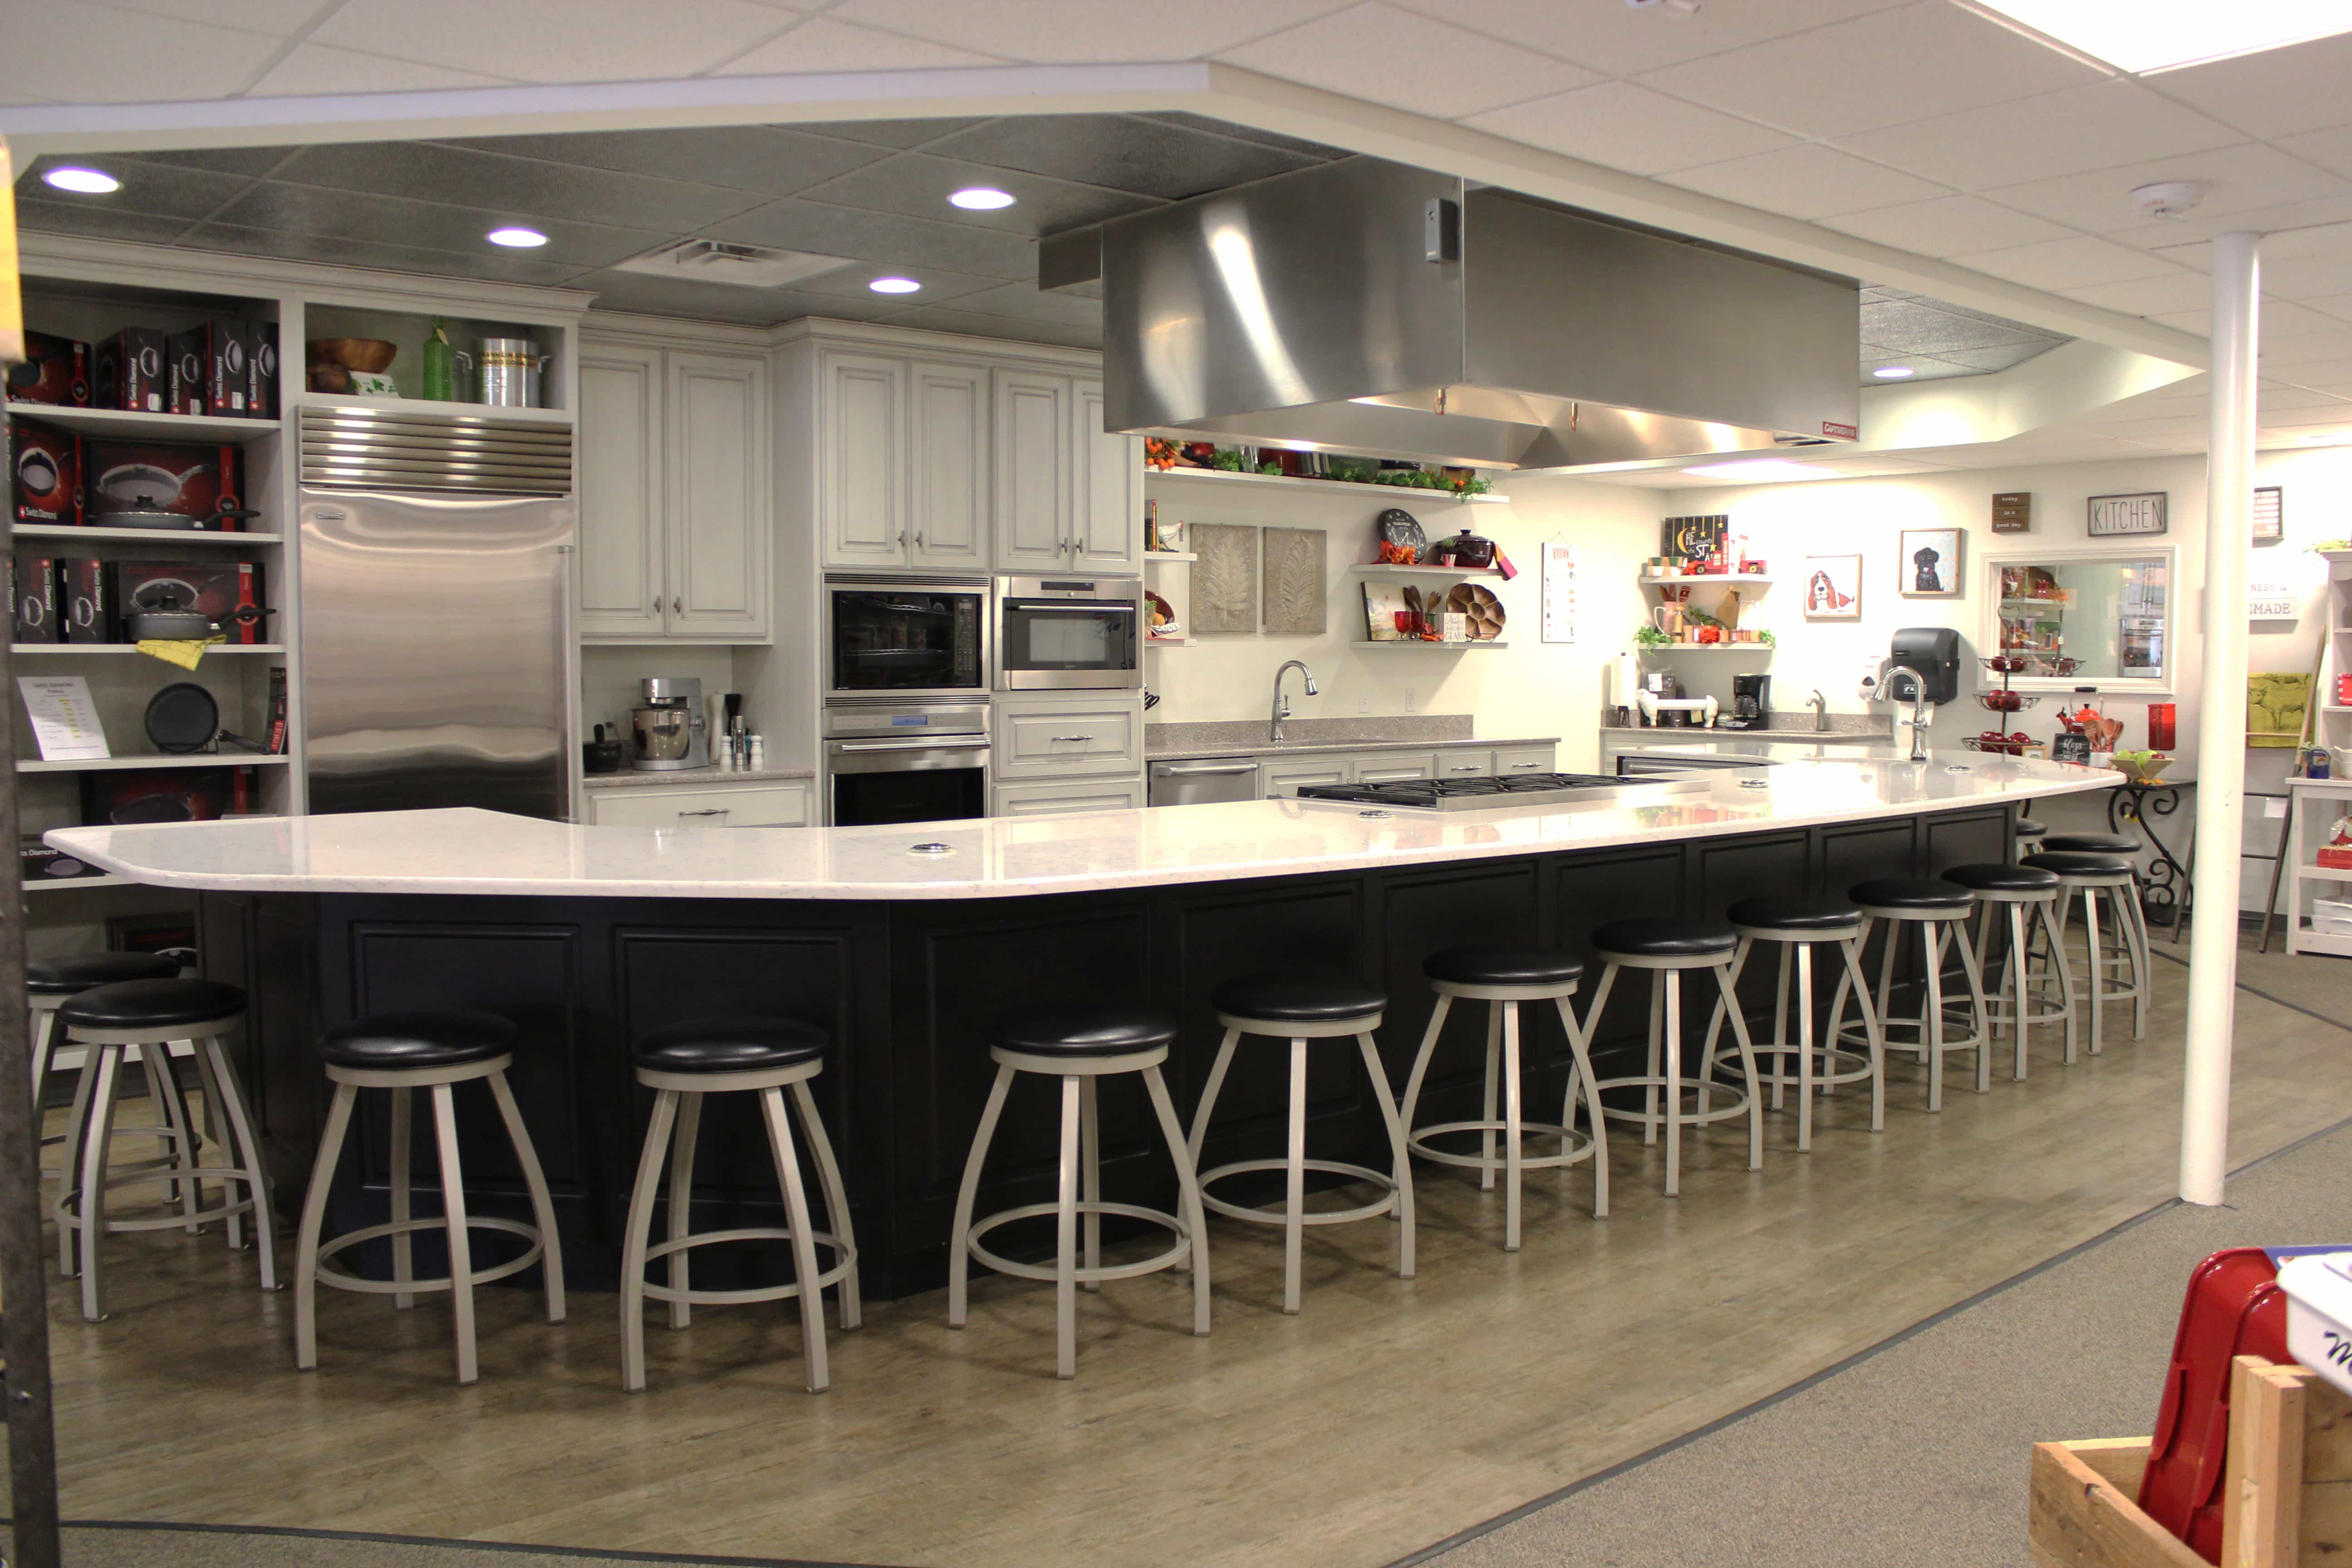 comfort the seems interior restaurant interesting countertops so of design service bar great and ideas ideass inside modern